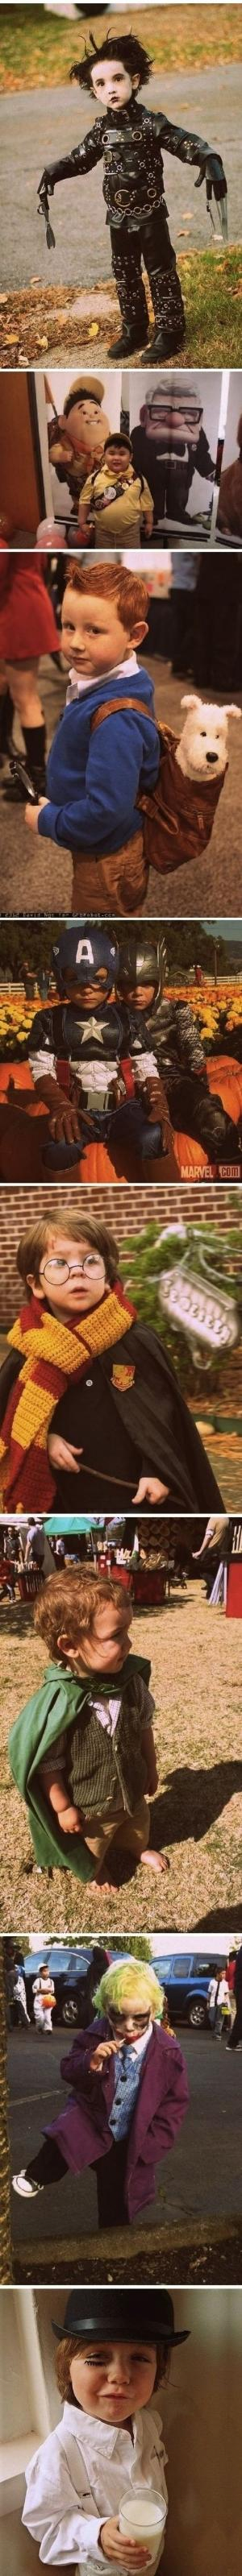 cool kid costumes by Rebeccalennox & cool kid costumes by Rebeccalennox | HALLOWEEN TOWN! | Pinterest ...